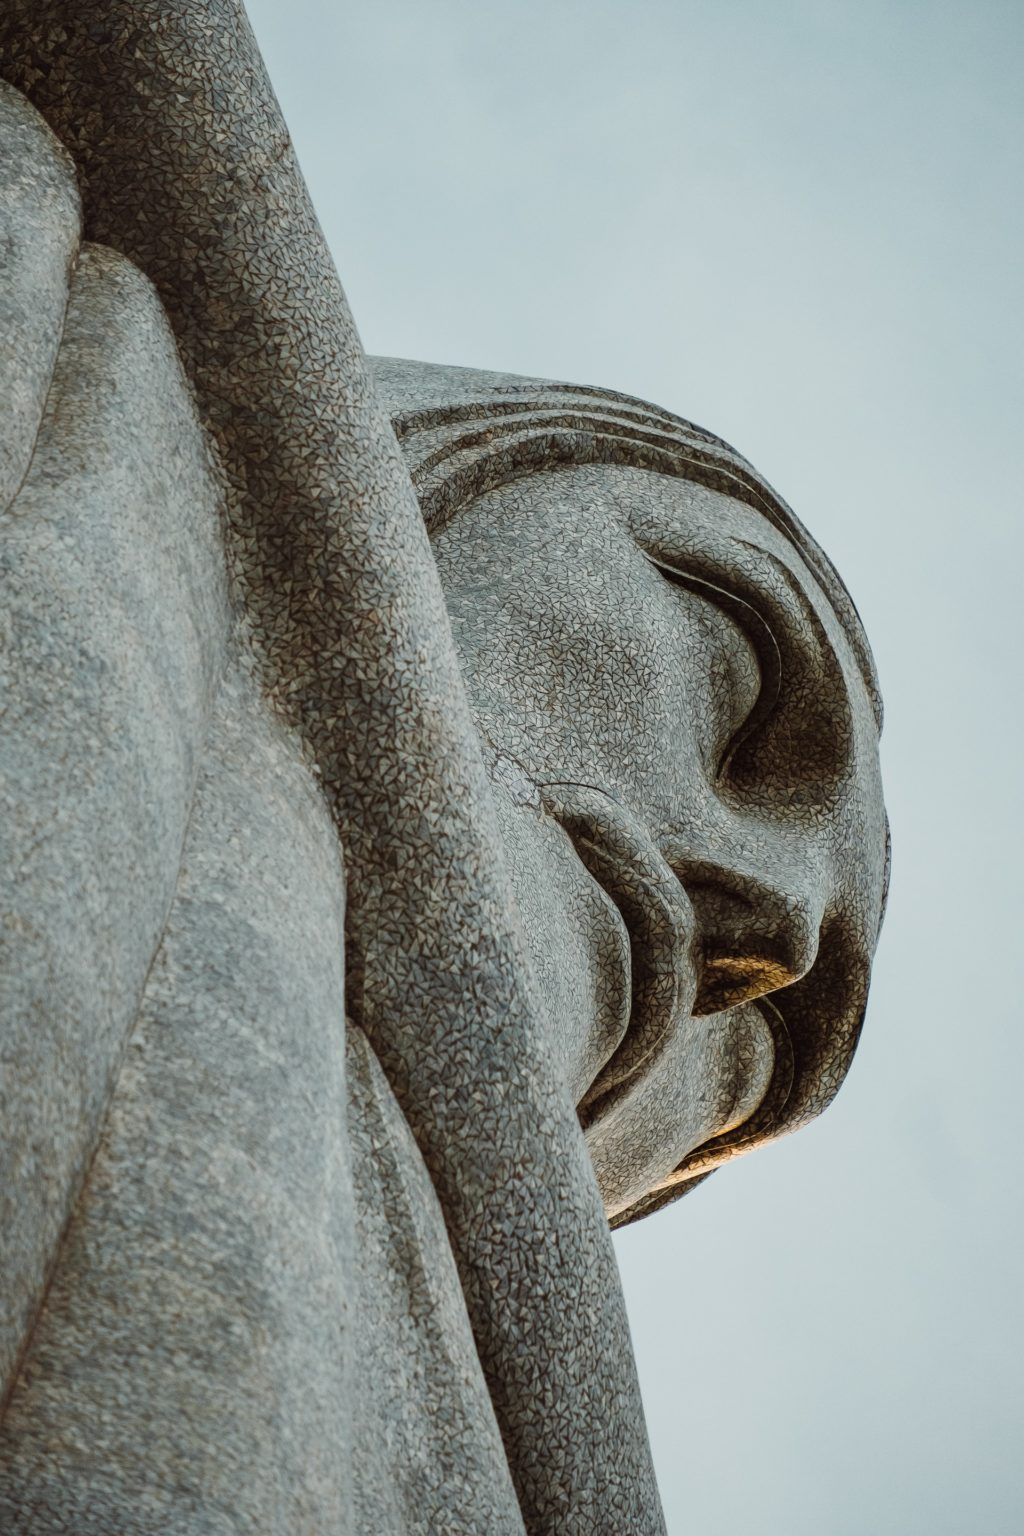 look for interesting perspectives or photograph only part of the statue